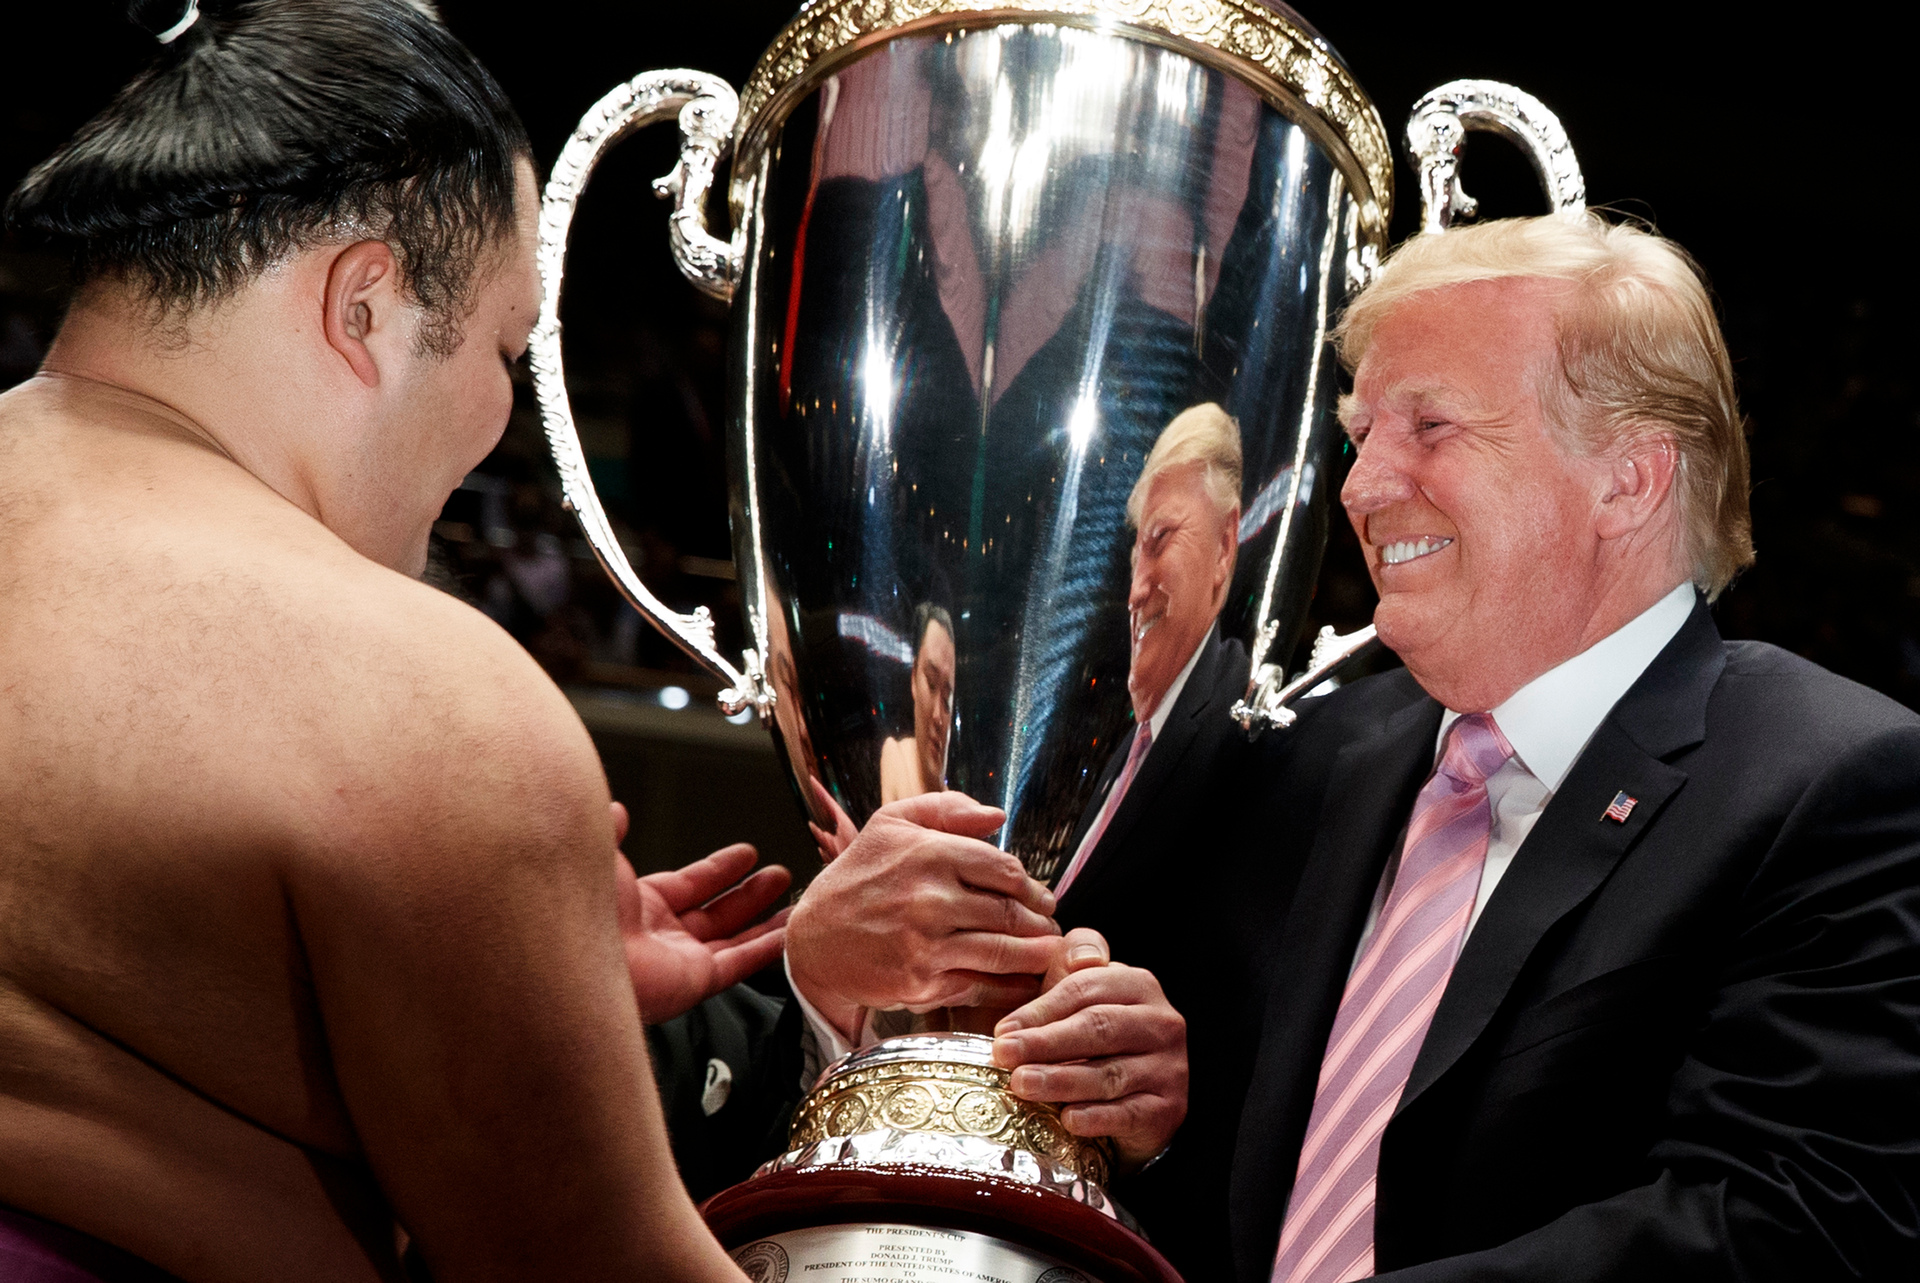 Donald Trump climbs into sumo ring in Japan to present 30kg trophy